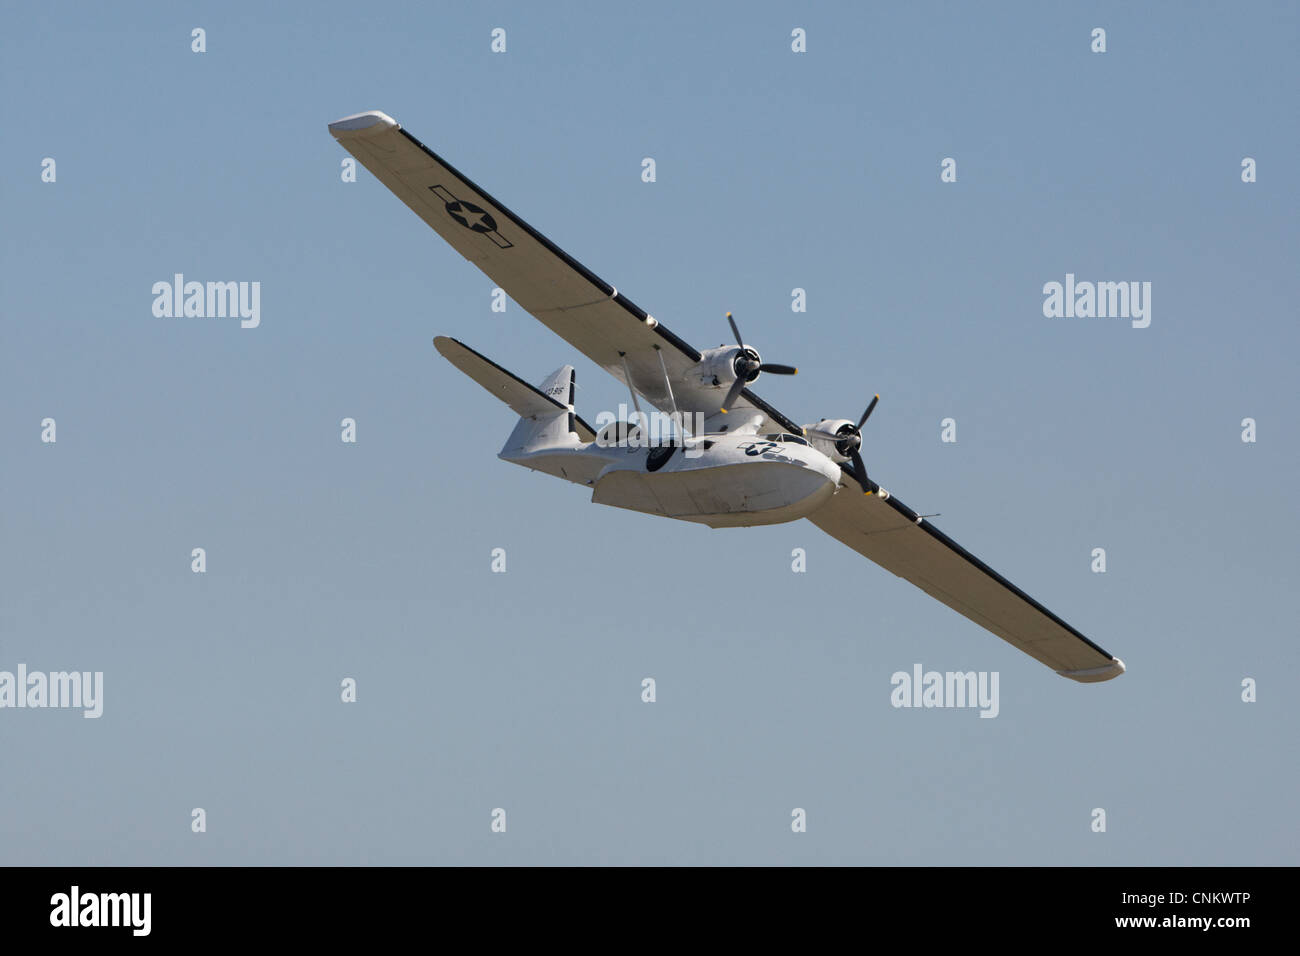 Convair PBY-5A Catalina flying at an air show - Stock Image